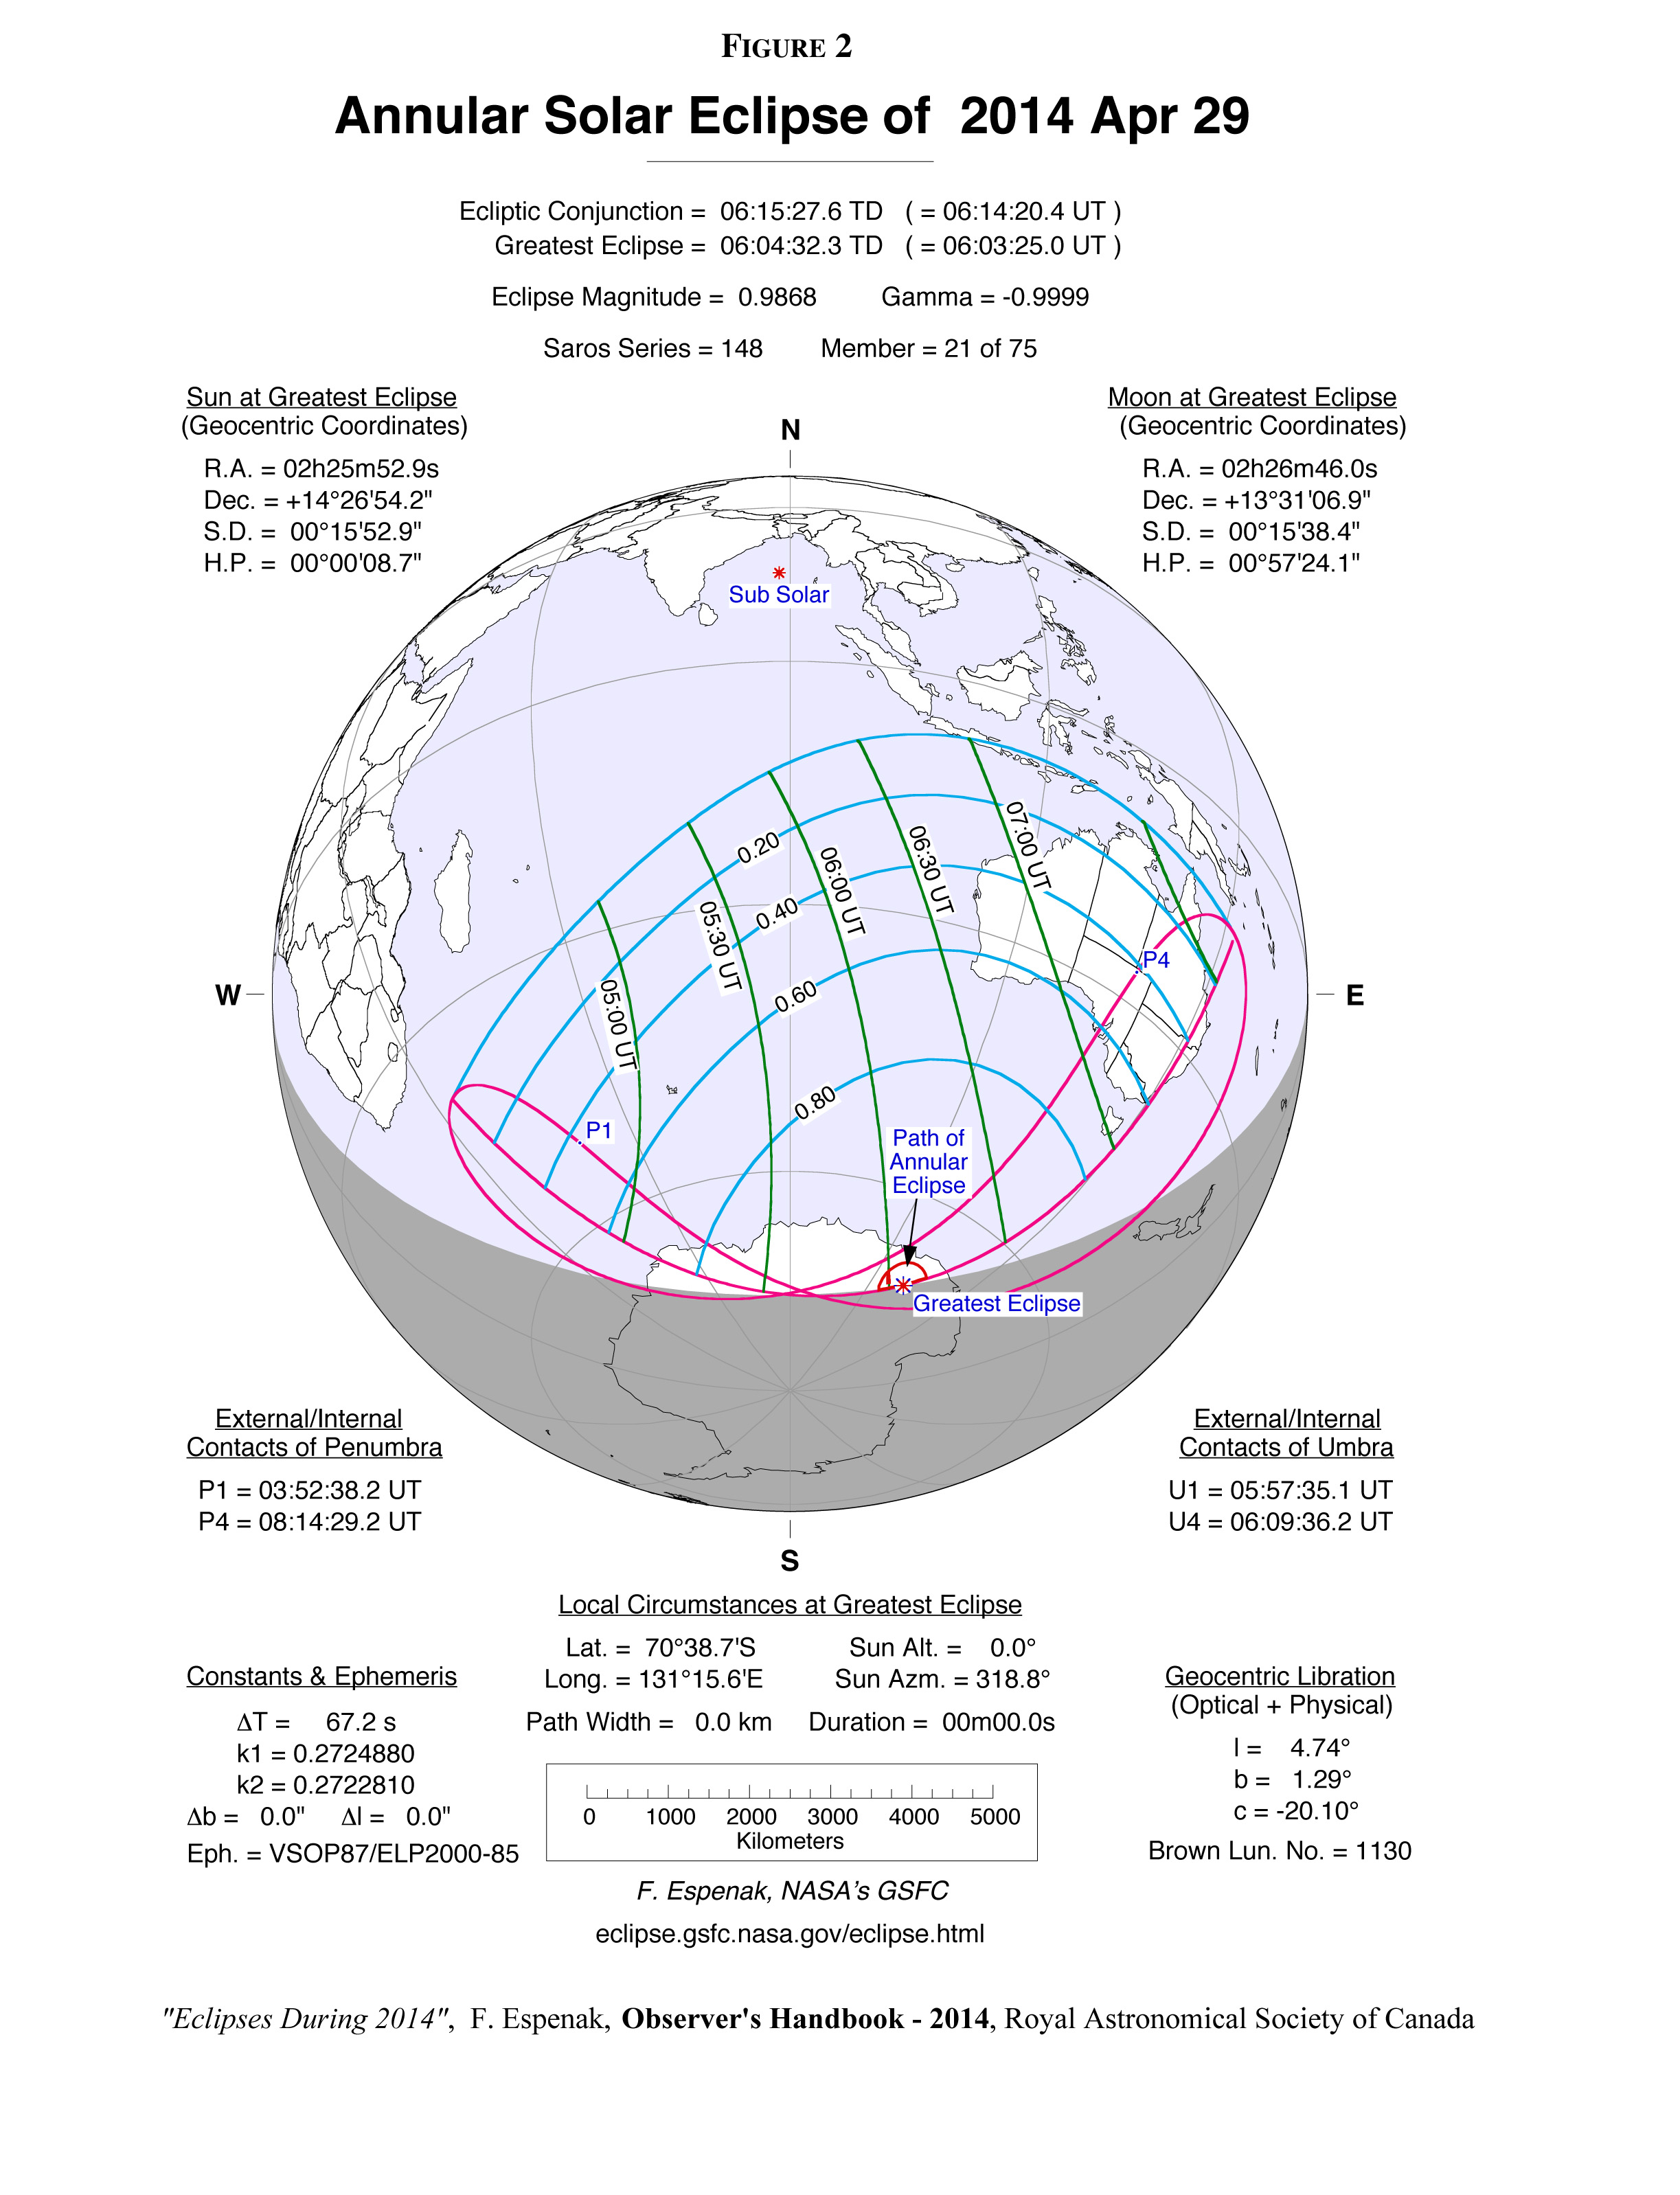 April 28-29, 2014 Solar Eclipse Visibility Map